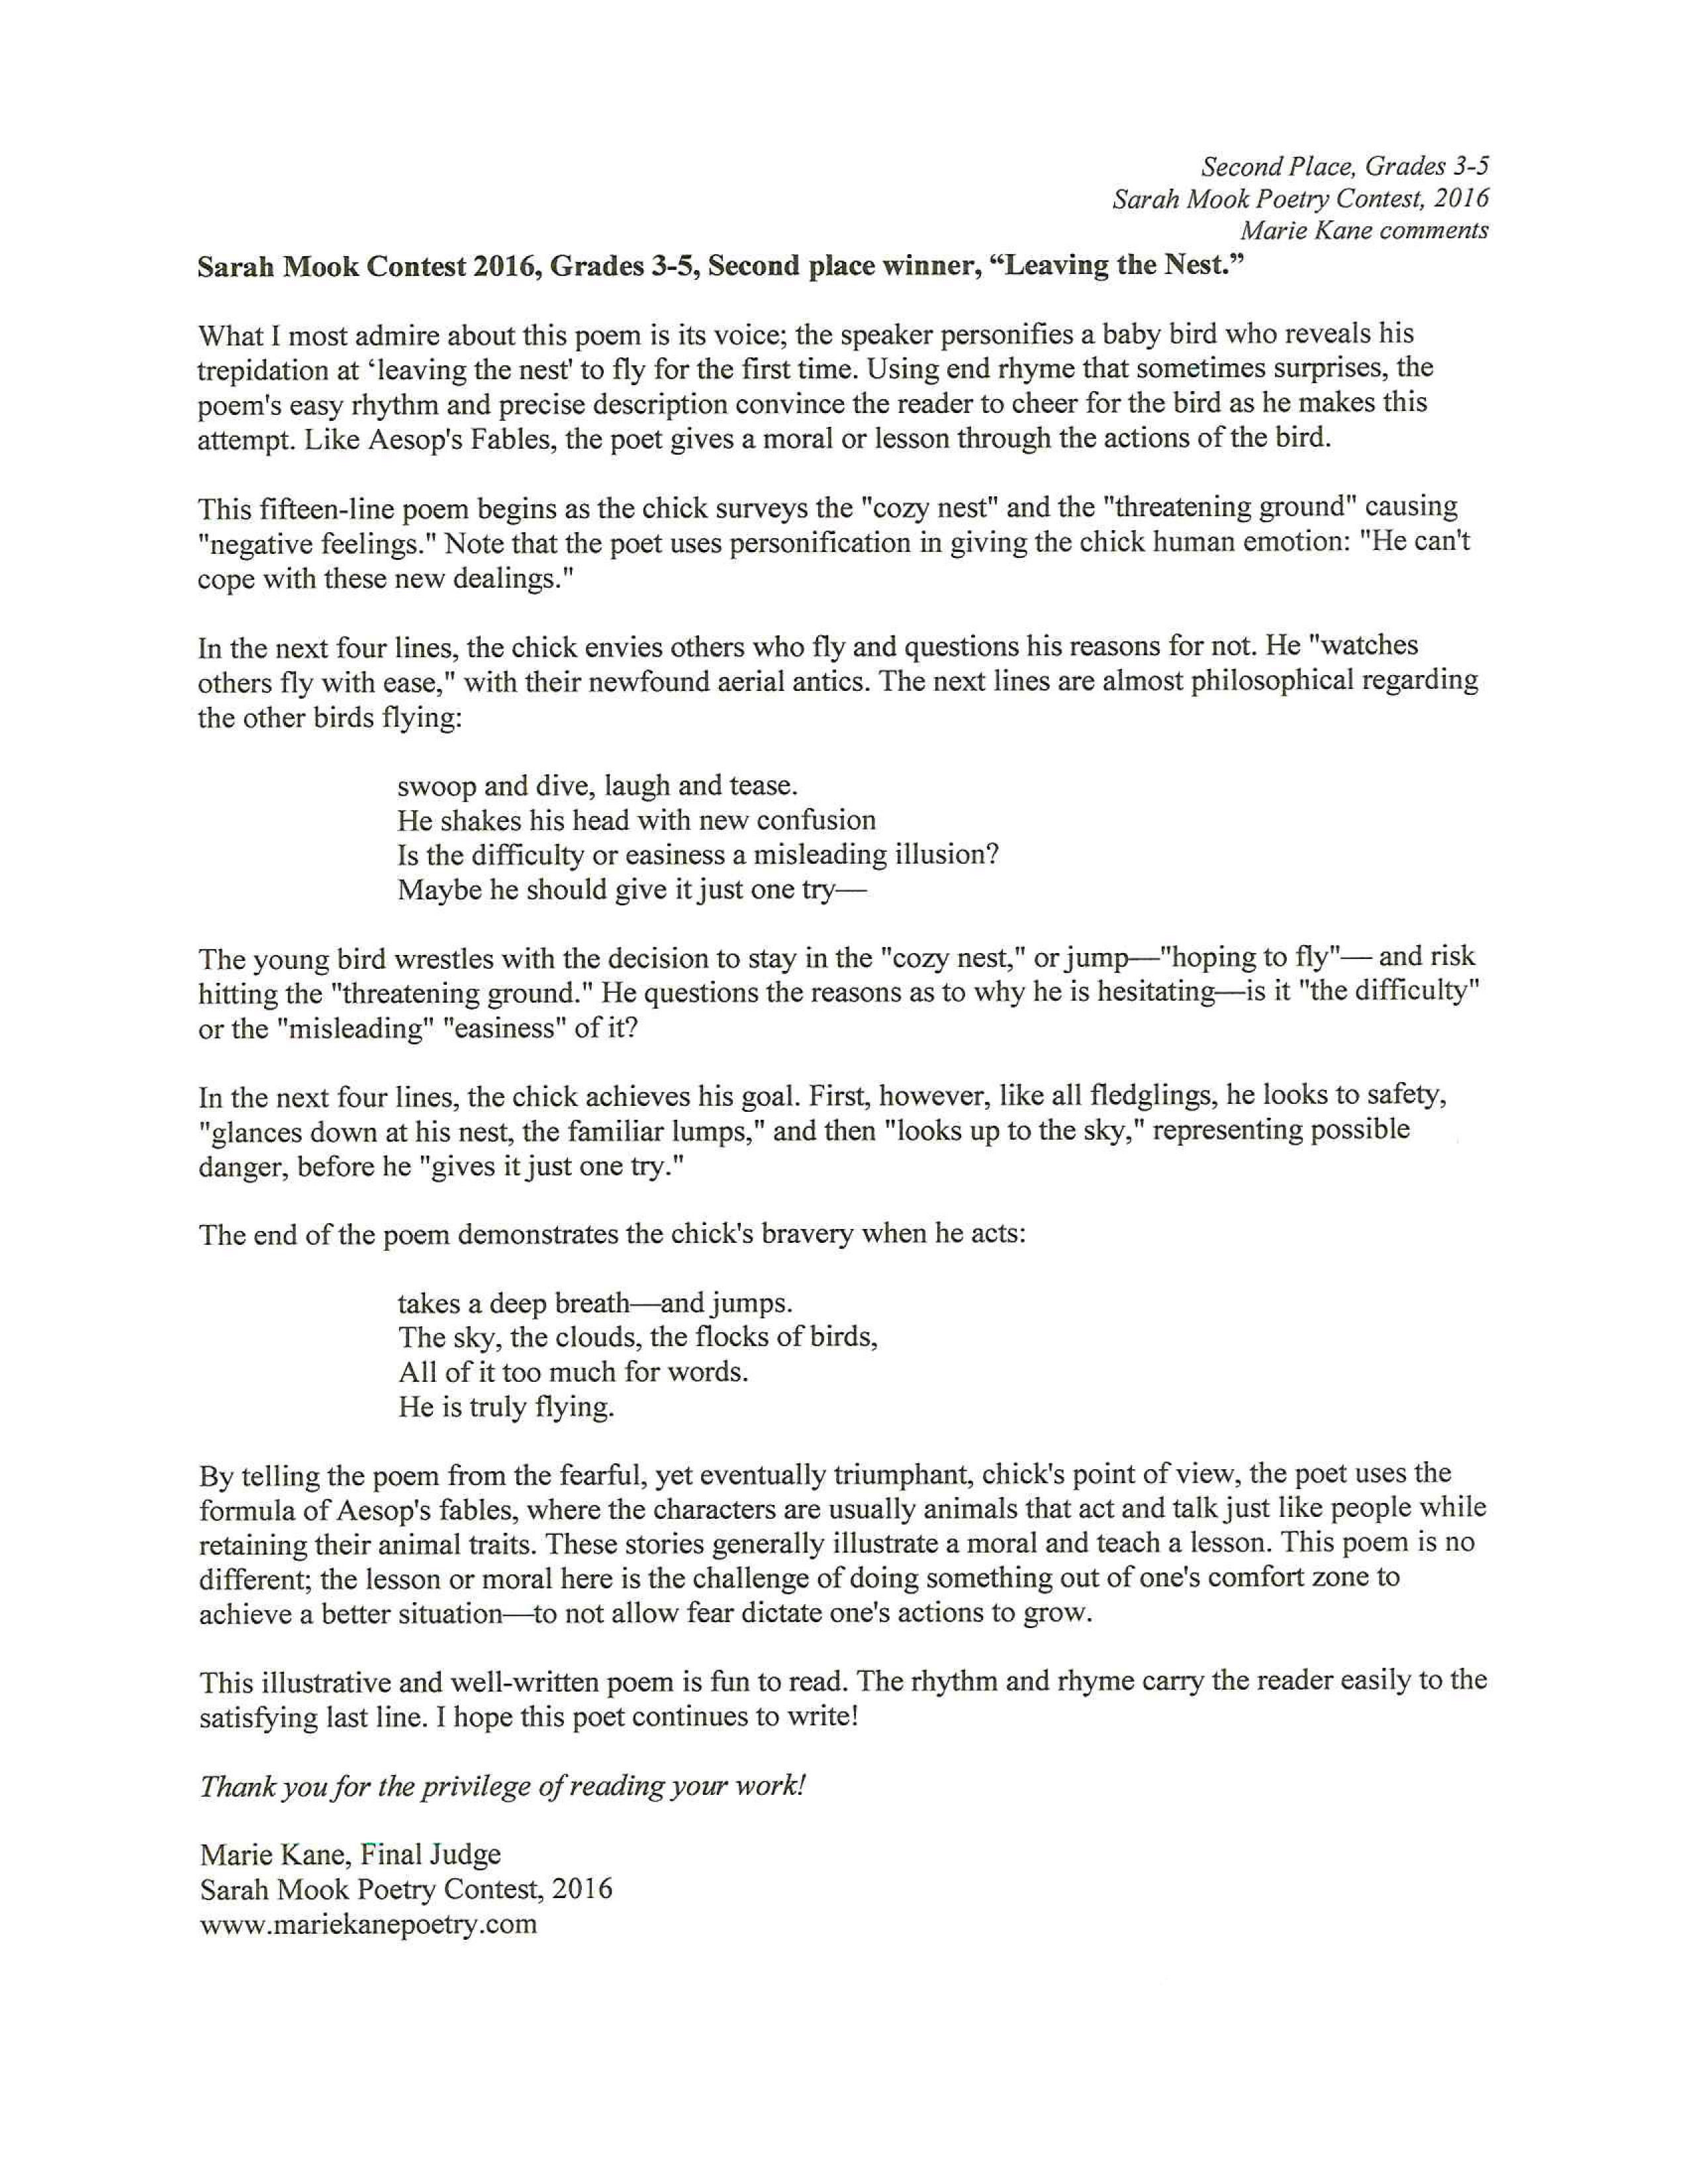 Sarah mook poetry contest 2016 contest guidelines judges comments leaving expocarfo Image collections